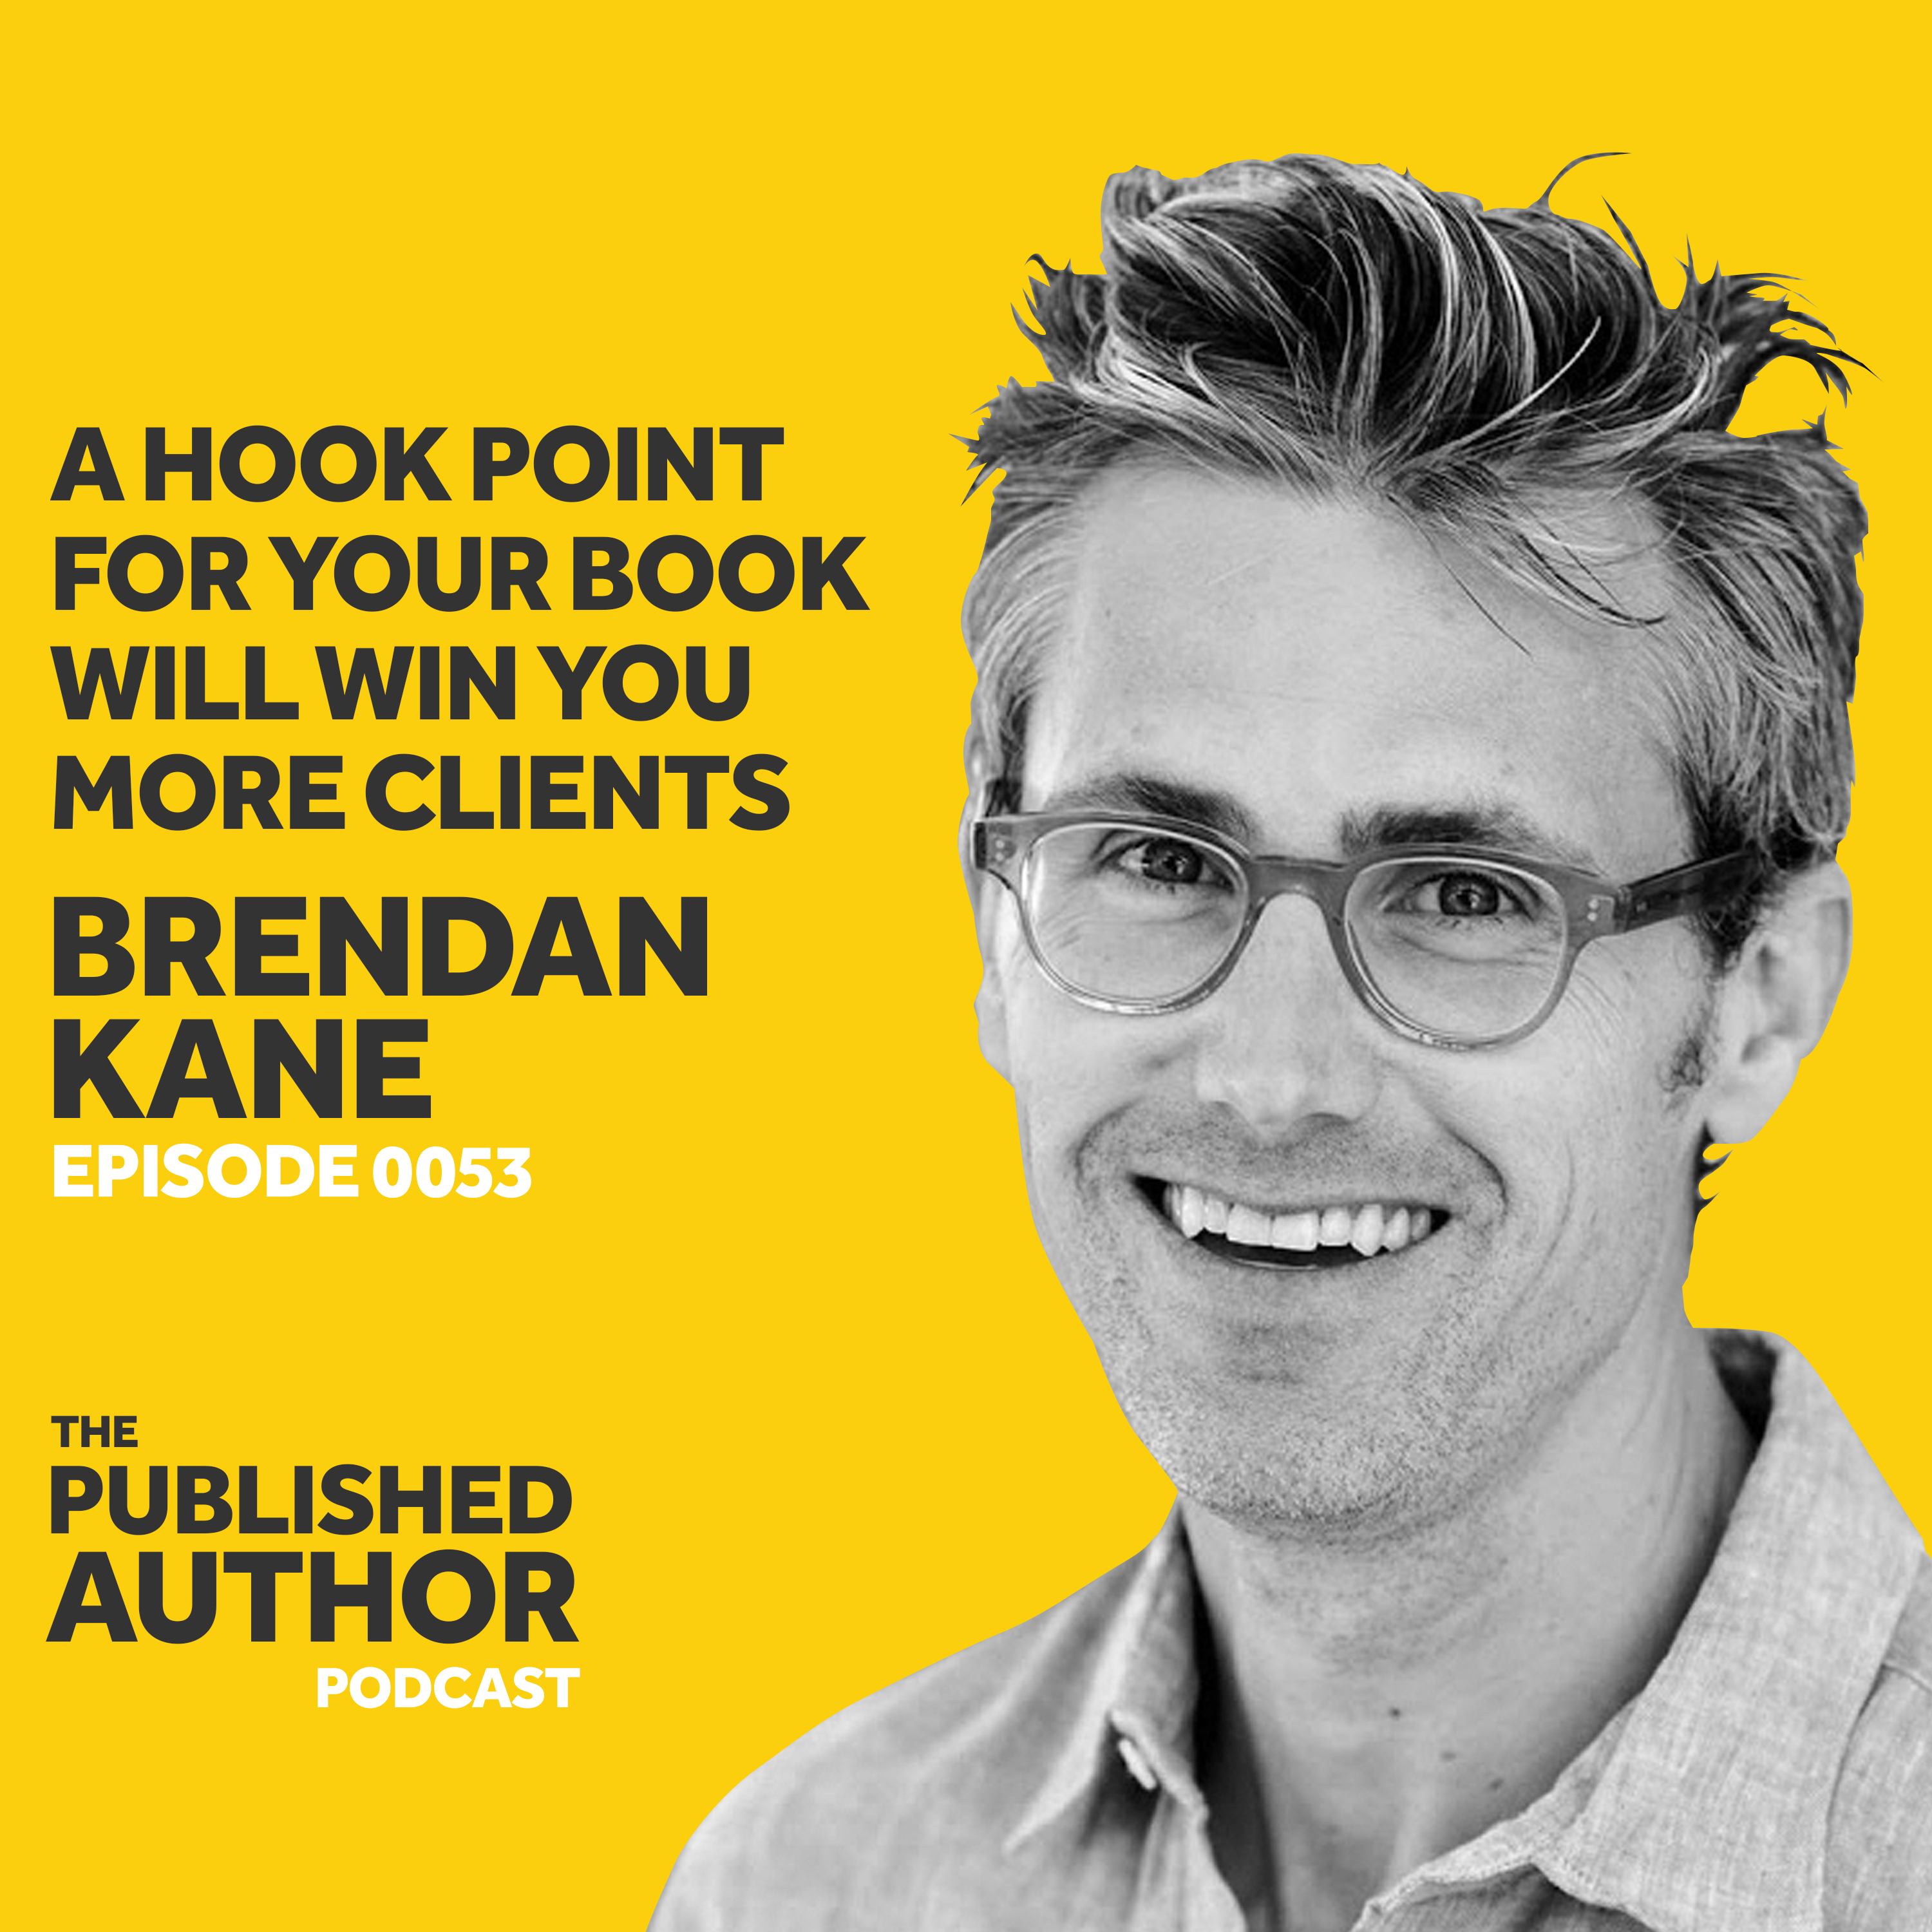 A Hook Point For Your Book Will Win Clients - Brendan Kane